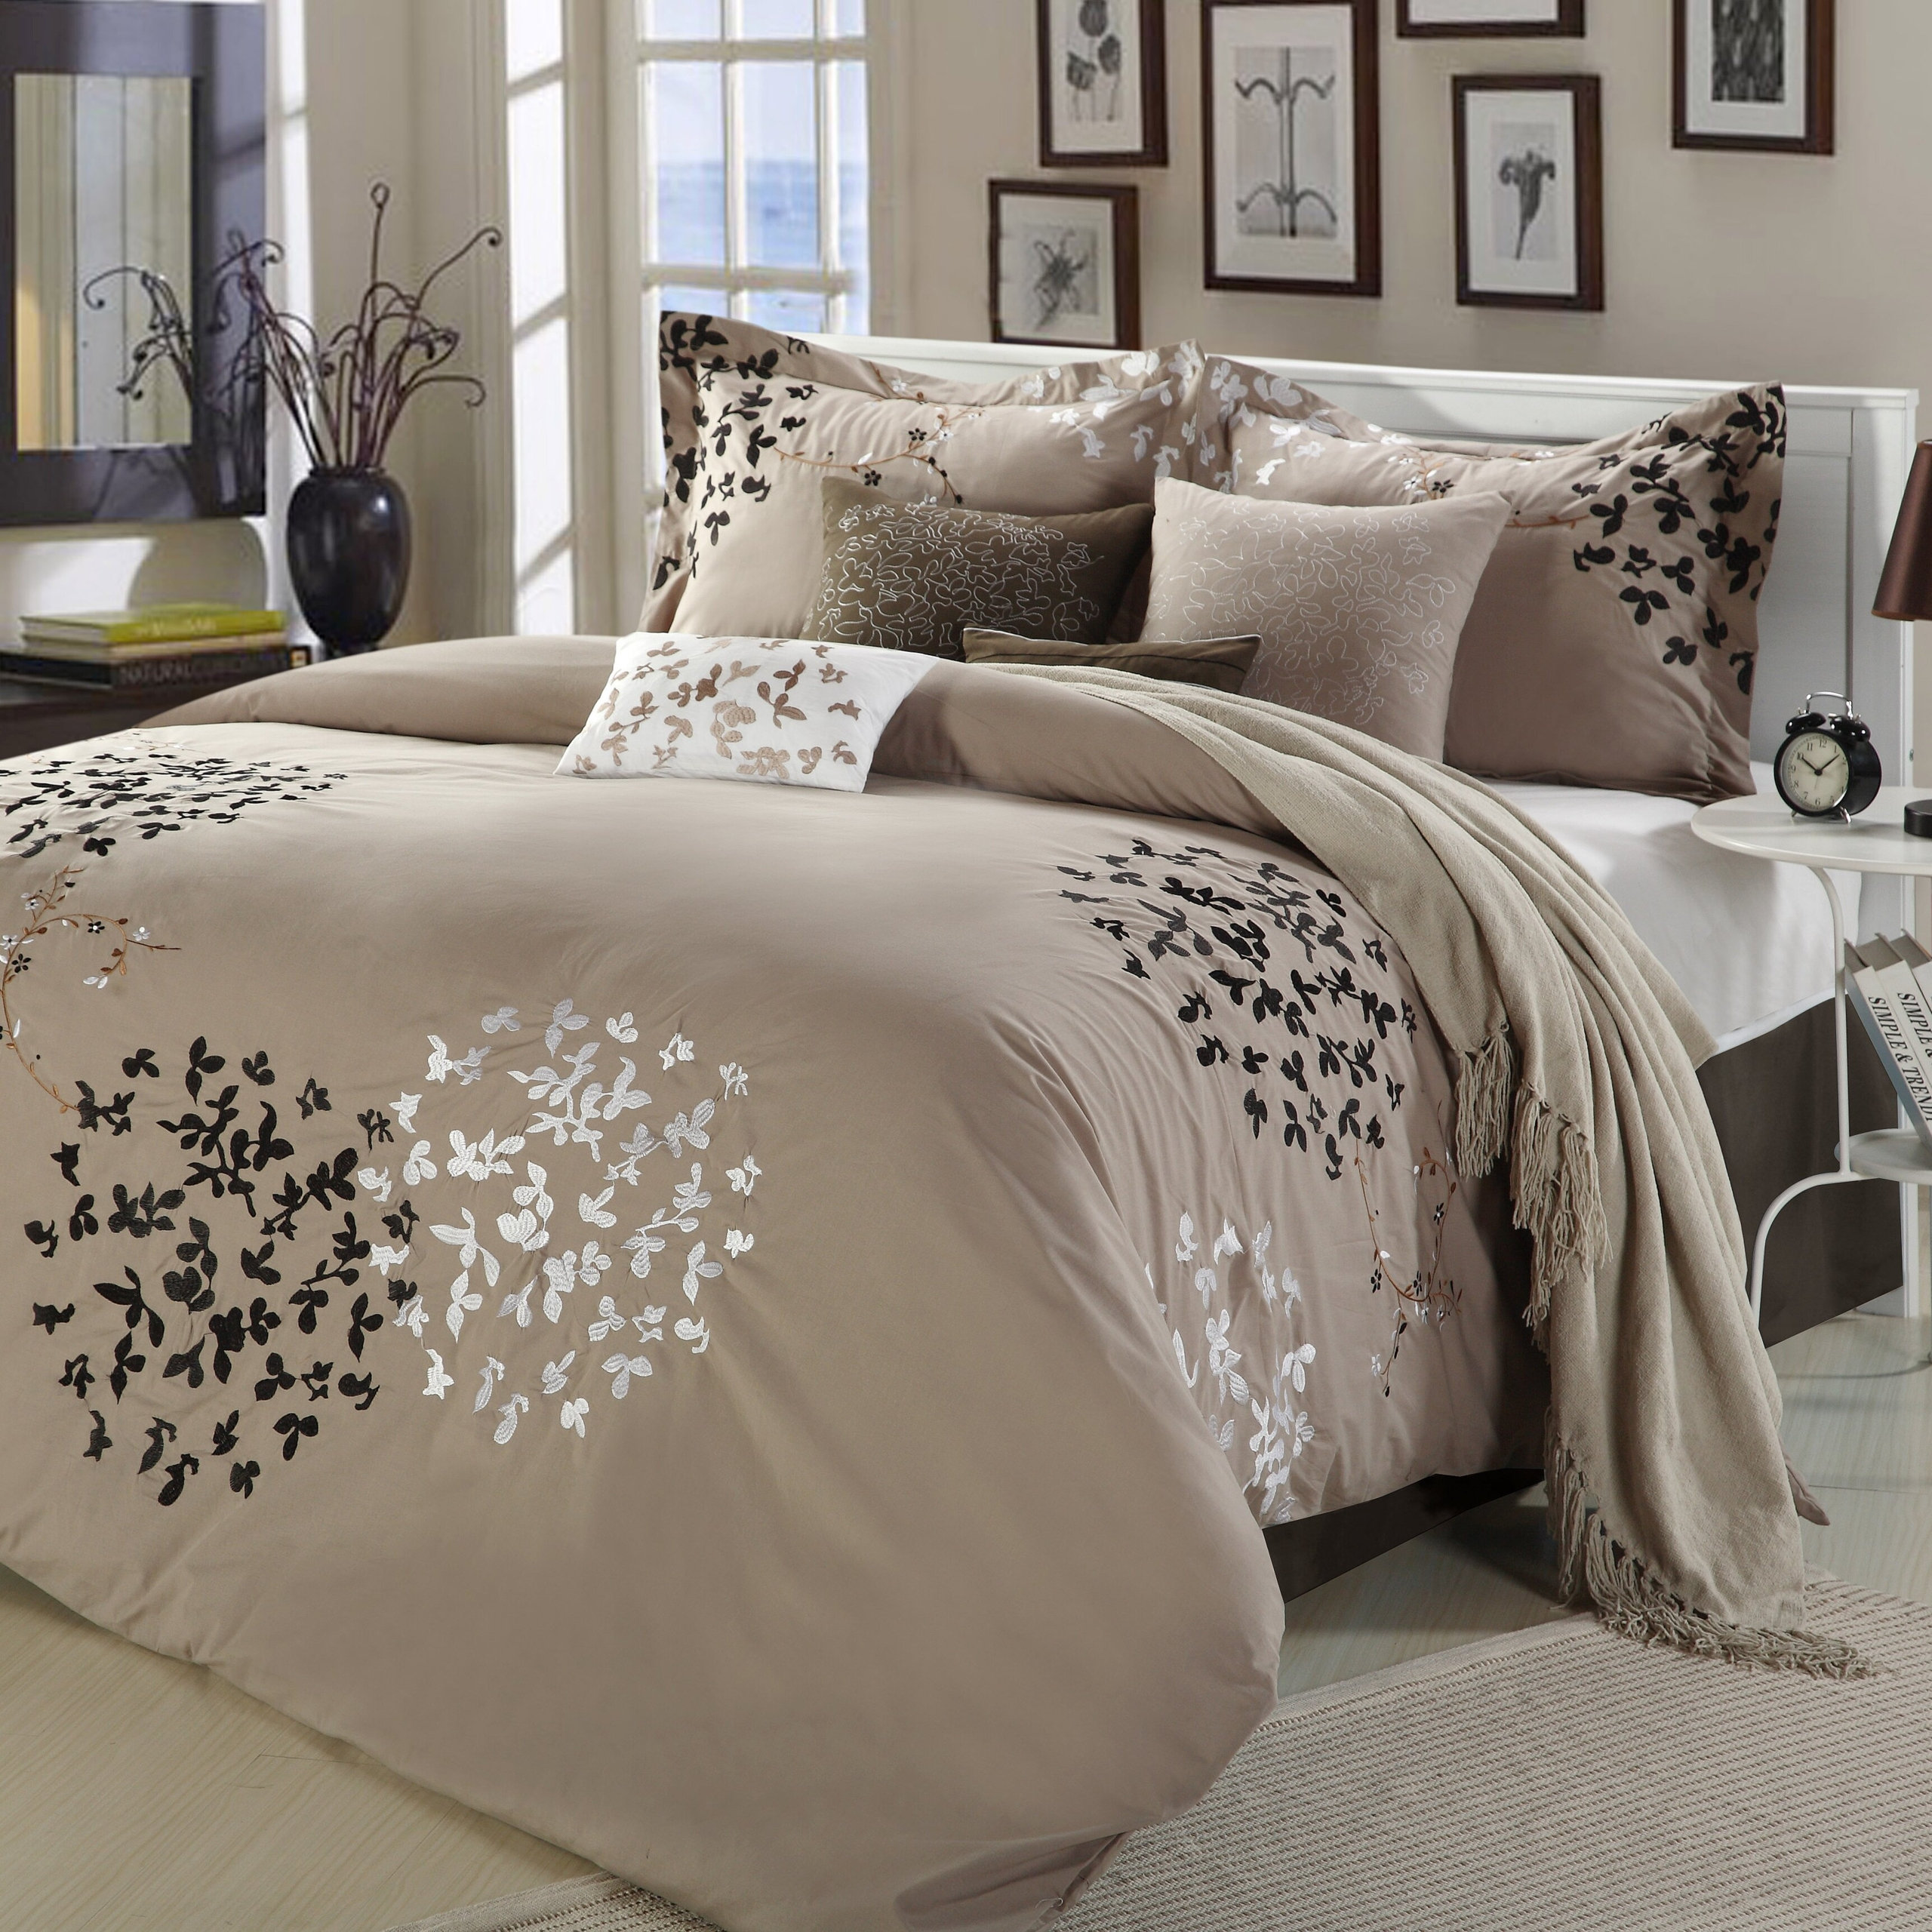 Chic Bed Sets 2